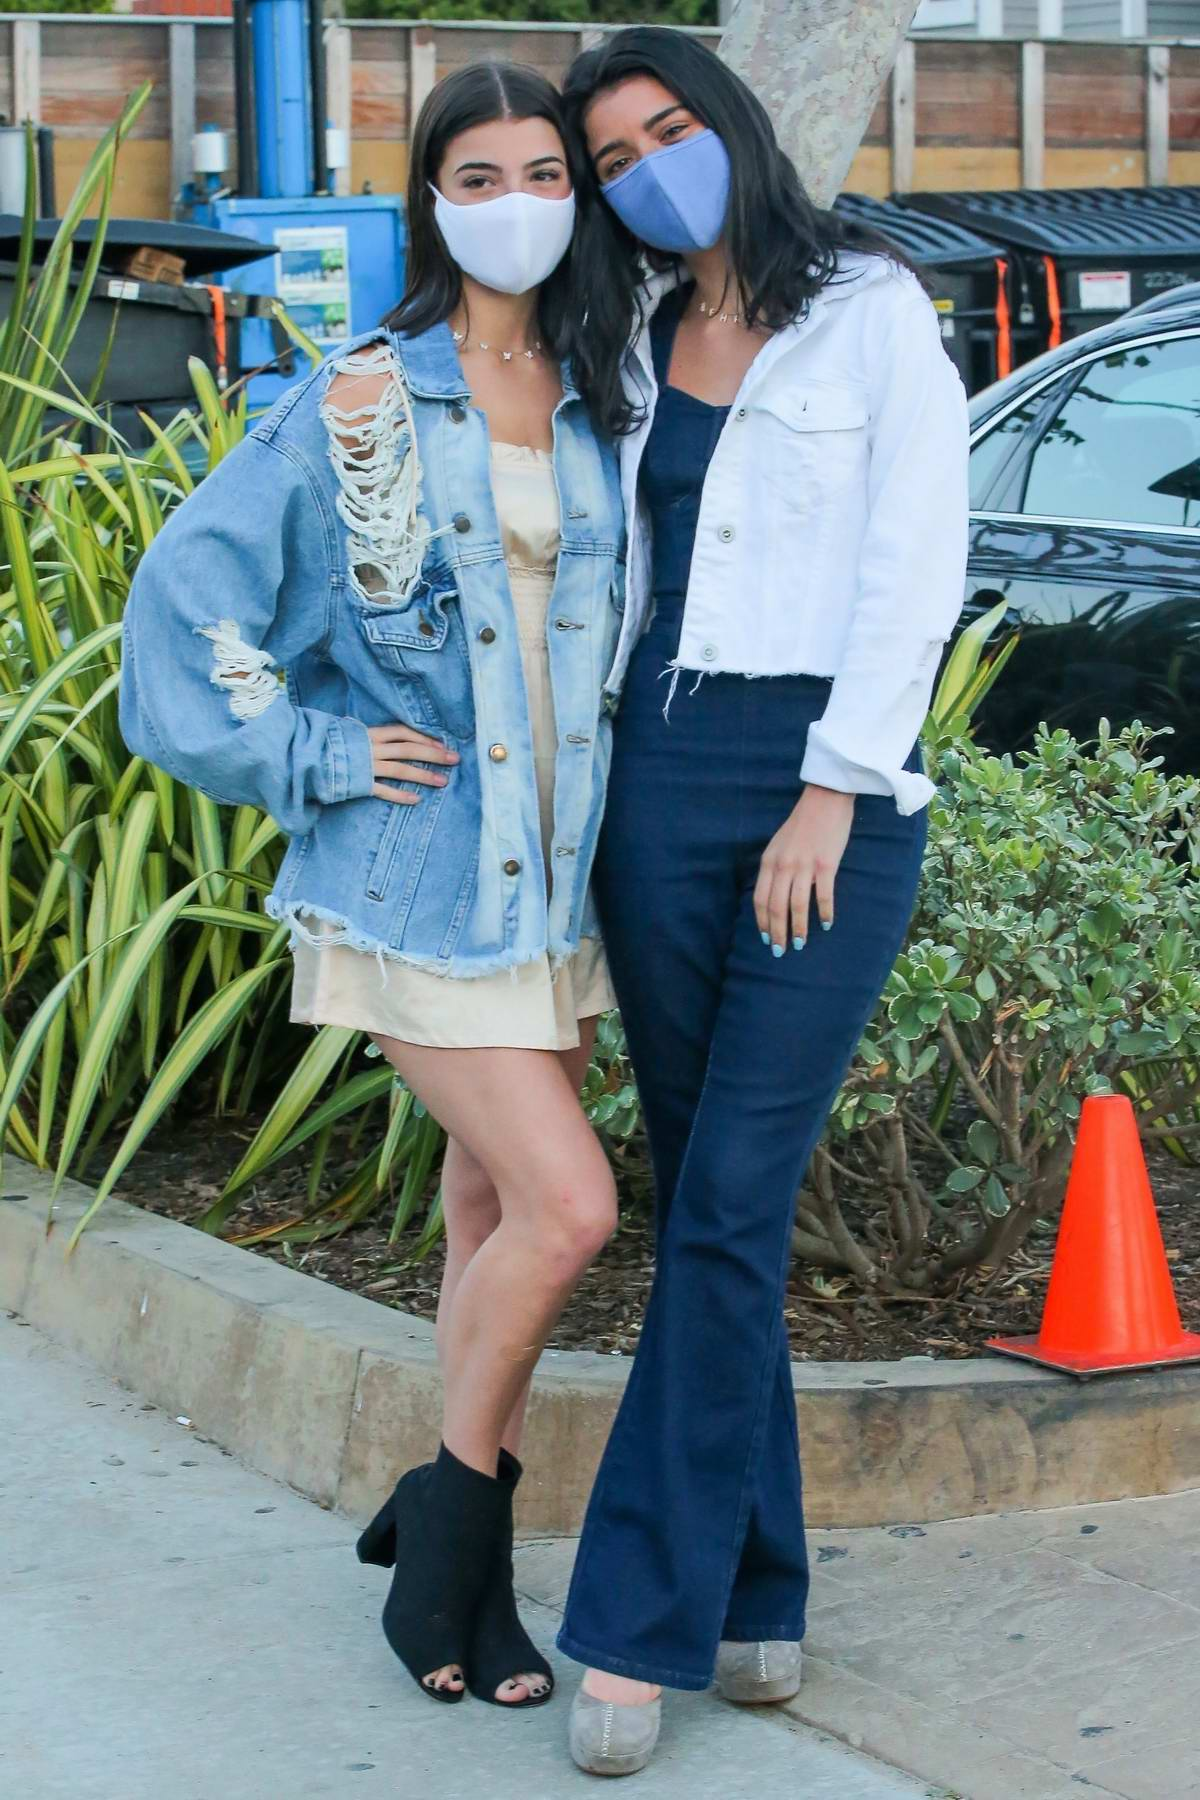 Charli D'Amelio and Dixie D'Amelio pose for photos after a family dinner at Nobu in Malibu, California